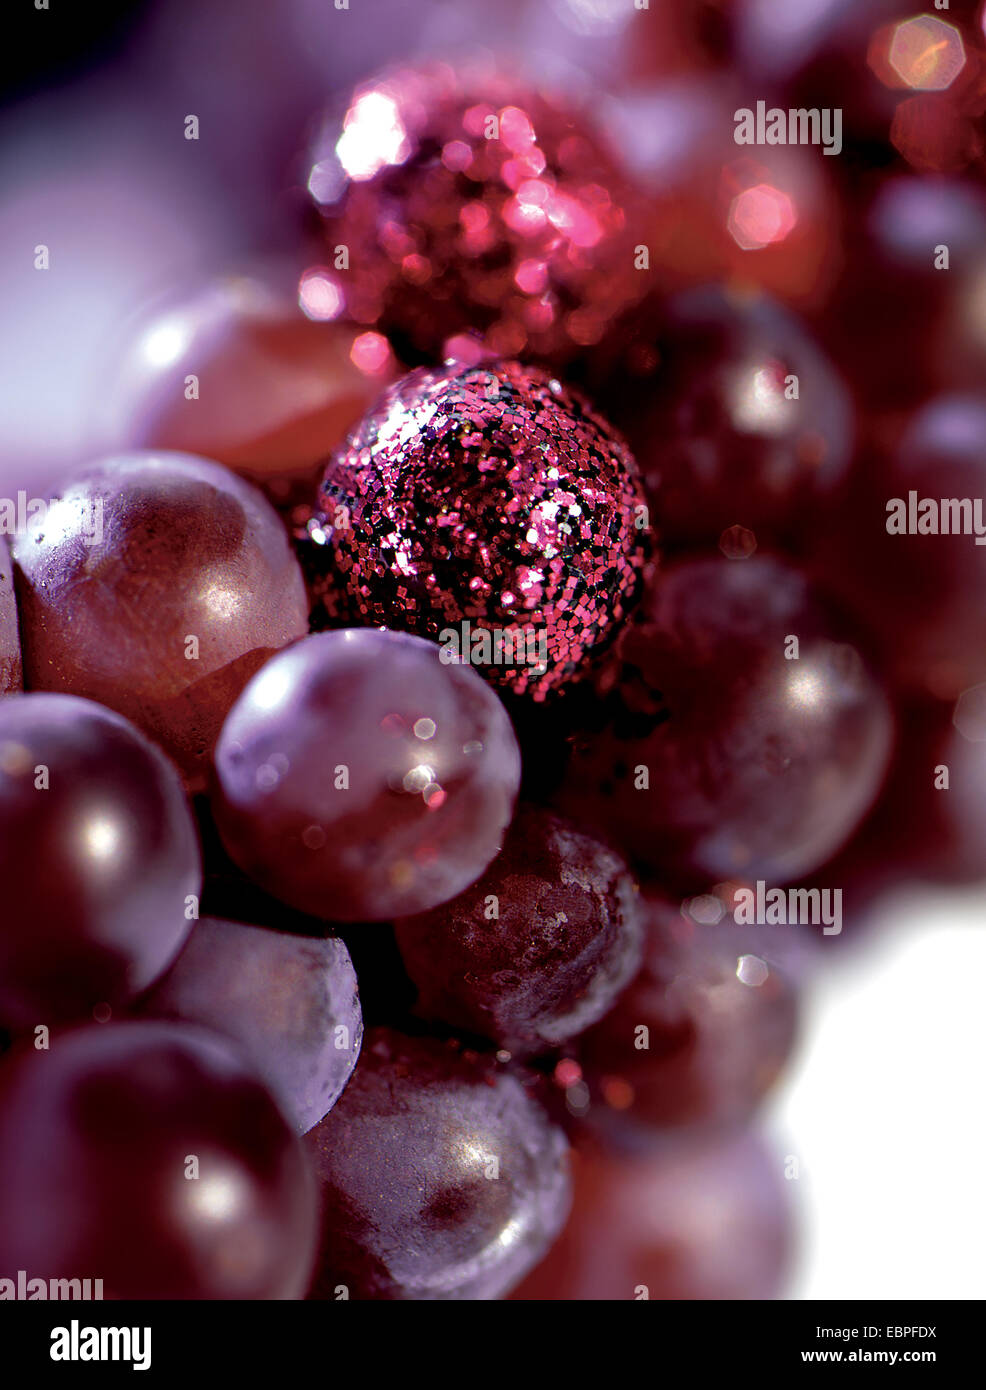 Red grapes with sparkle added to them - Stock Image